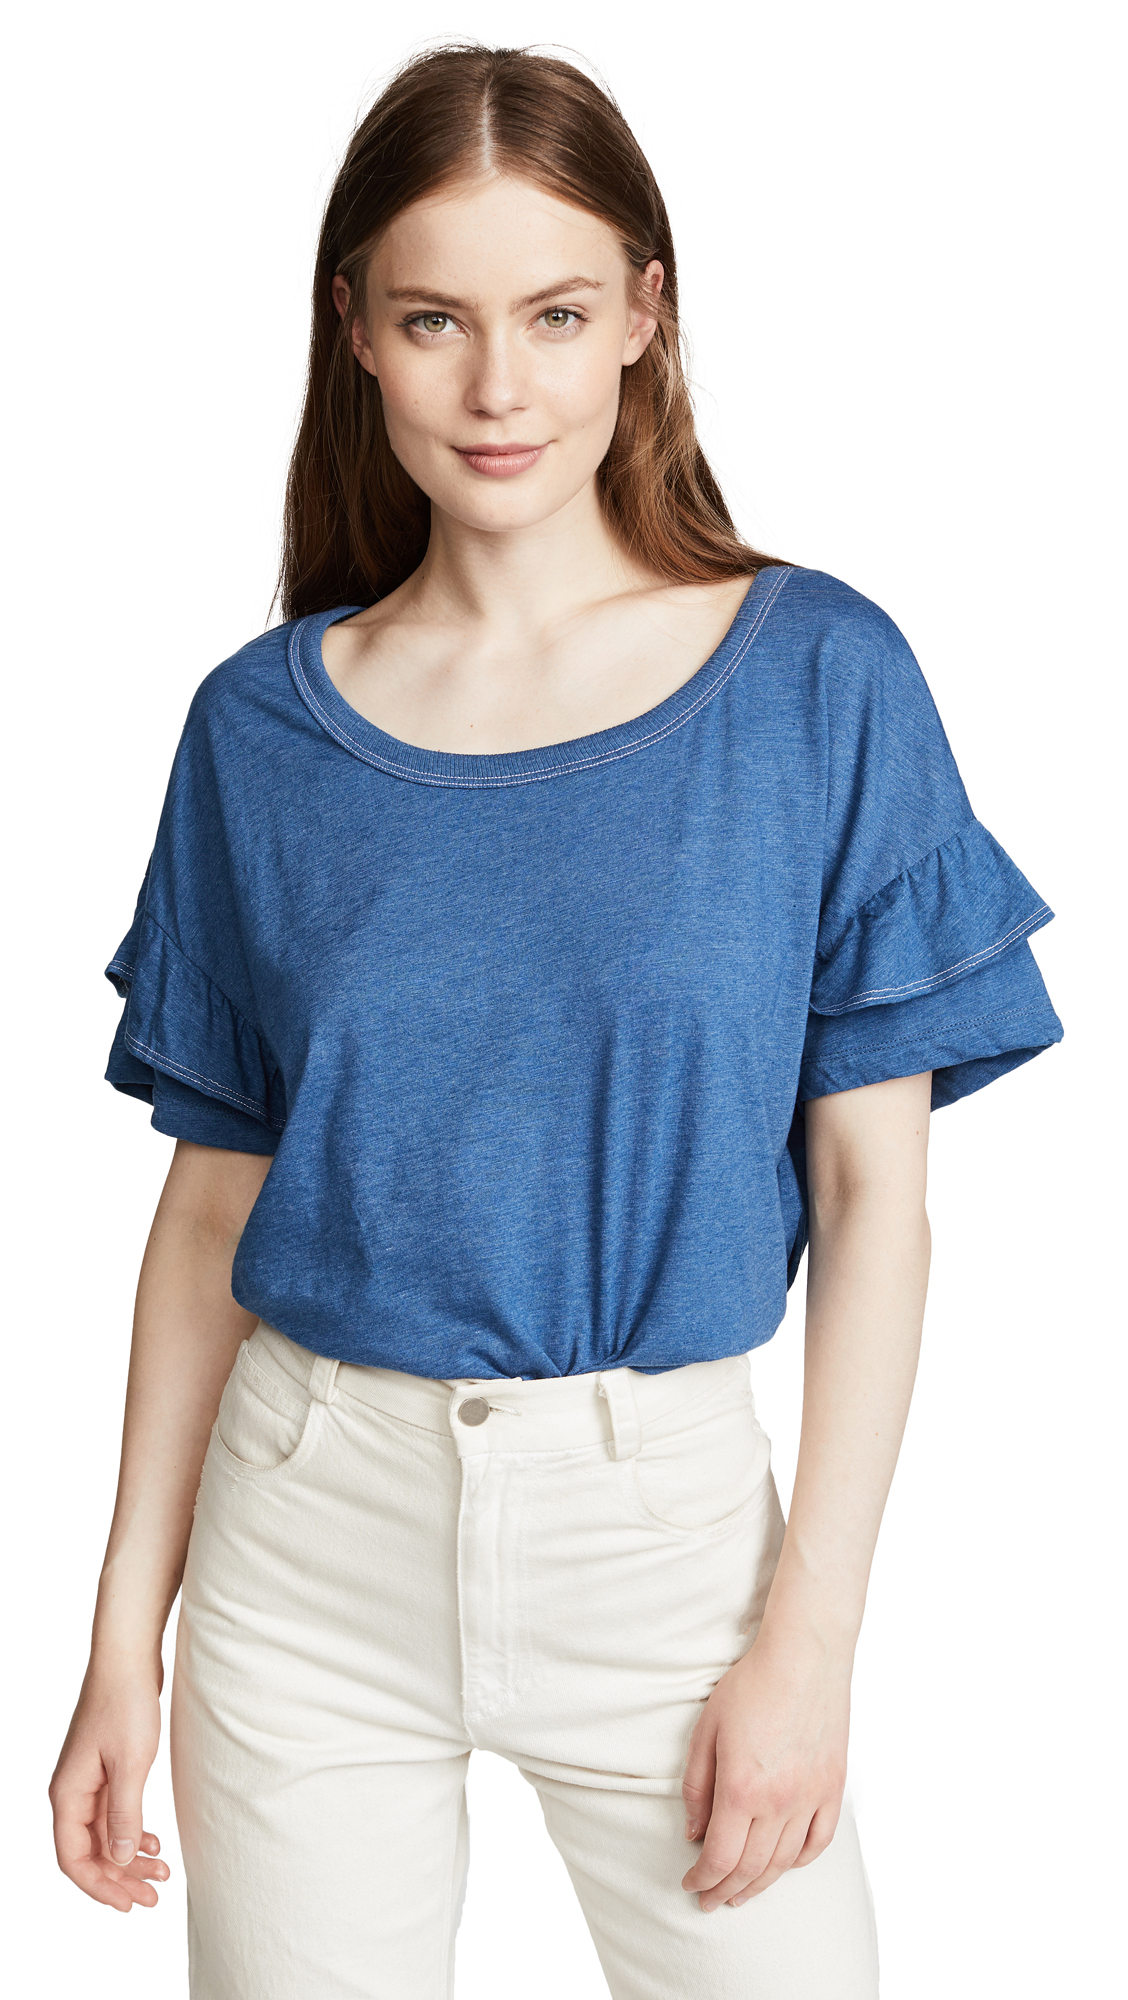 Splendid Short Sleeve Ruffle Tee In Light Indigo